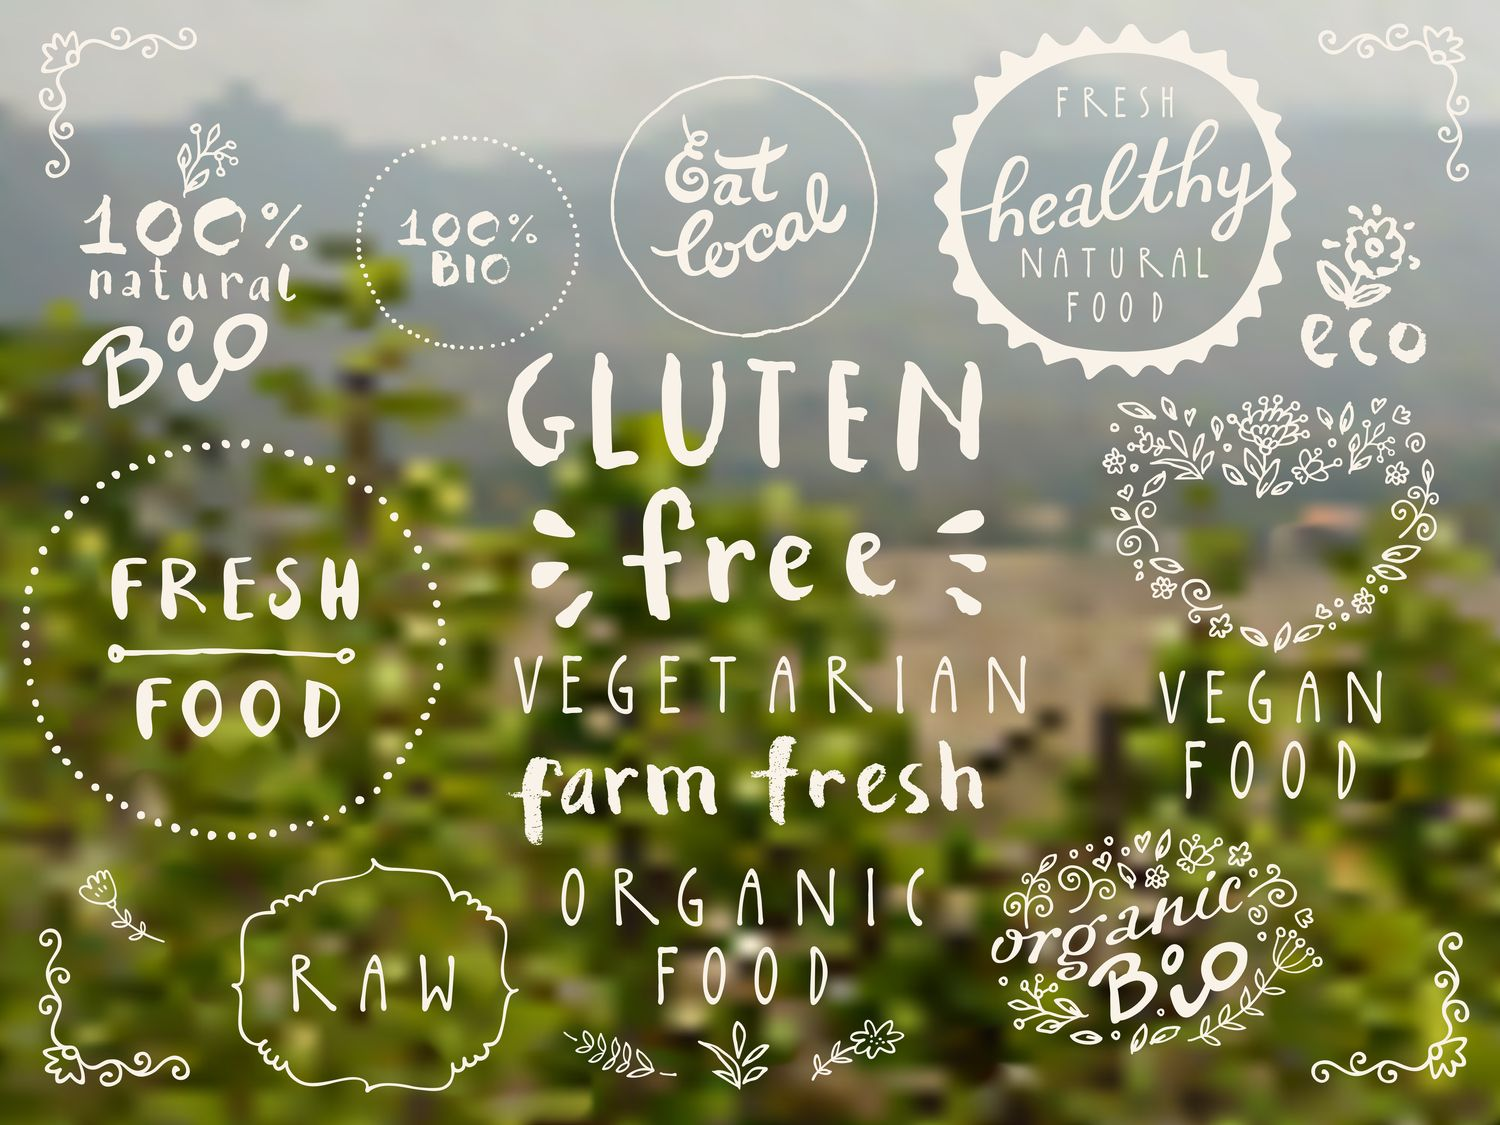 100% bio, eat local, healthy food, farm fresh food, eco, organic bio